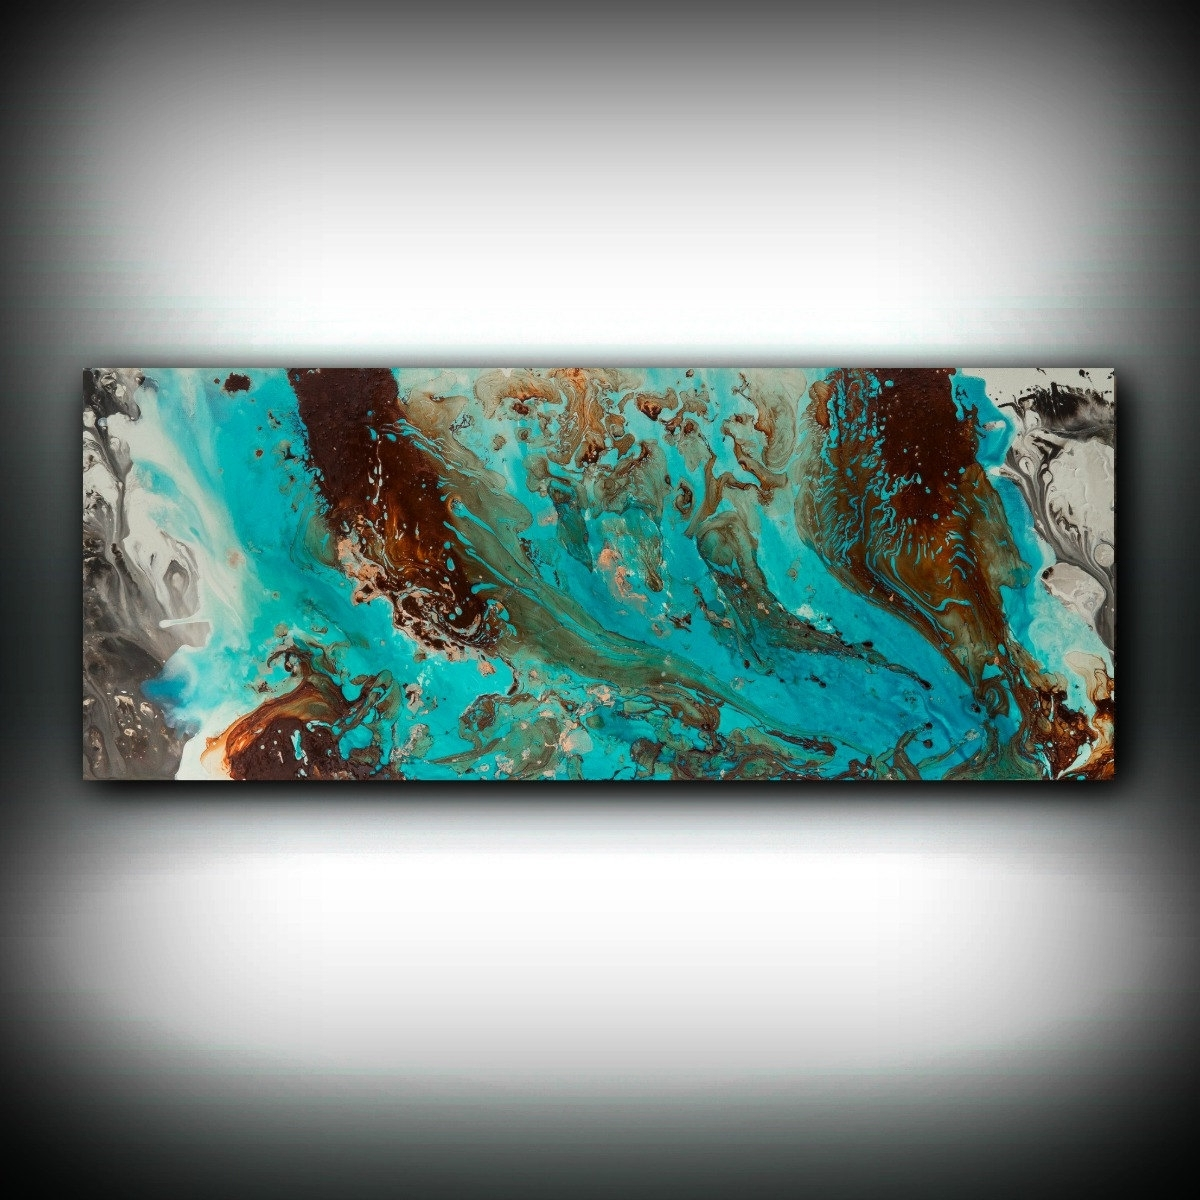 Teal And Brown Wall Art Throughout Most Up To Date Aqua Print, Blue And Brown Wall Art Decor, Colourful, Bohemian Art (View 14 of 15)